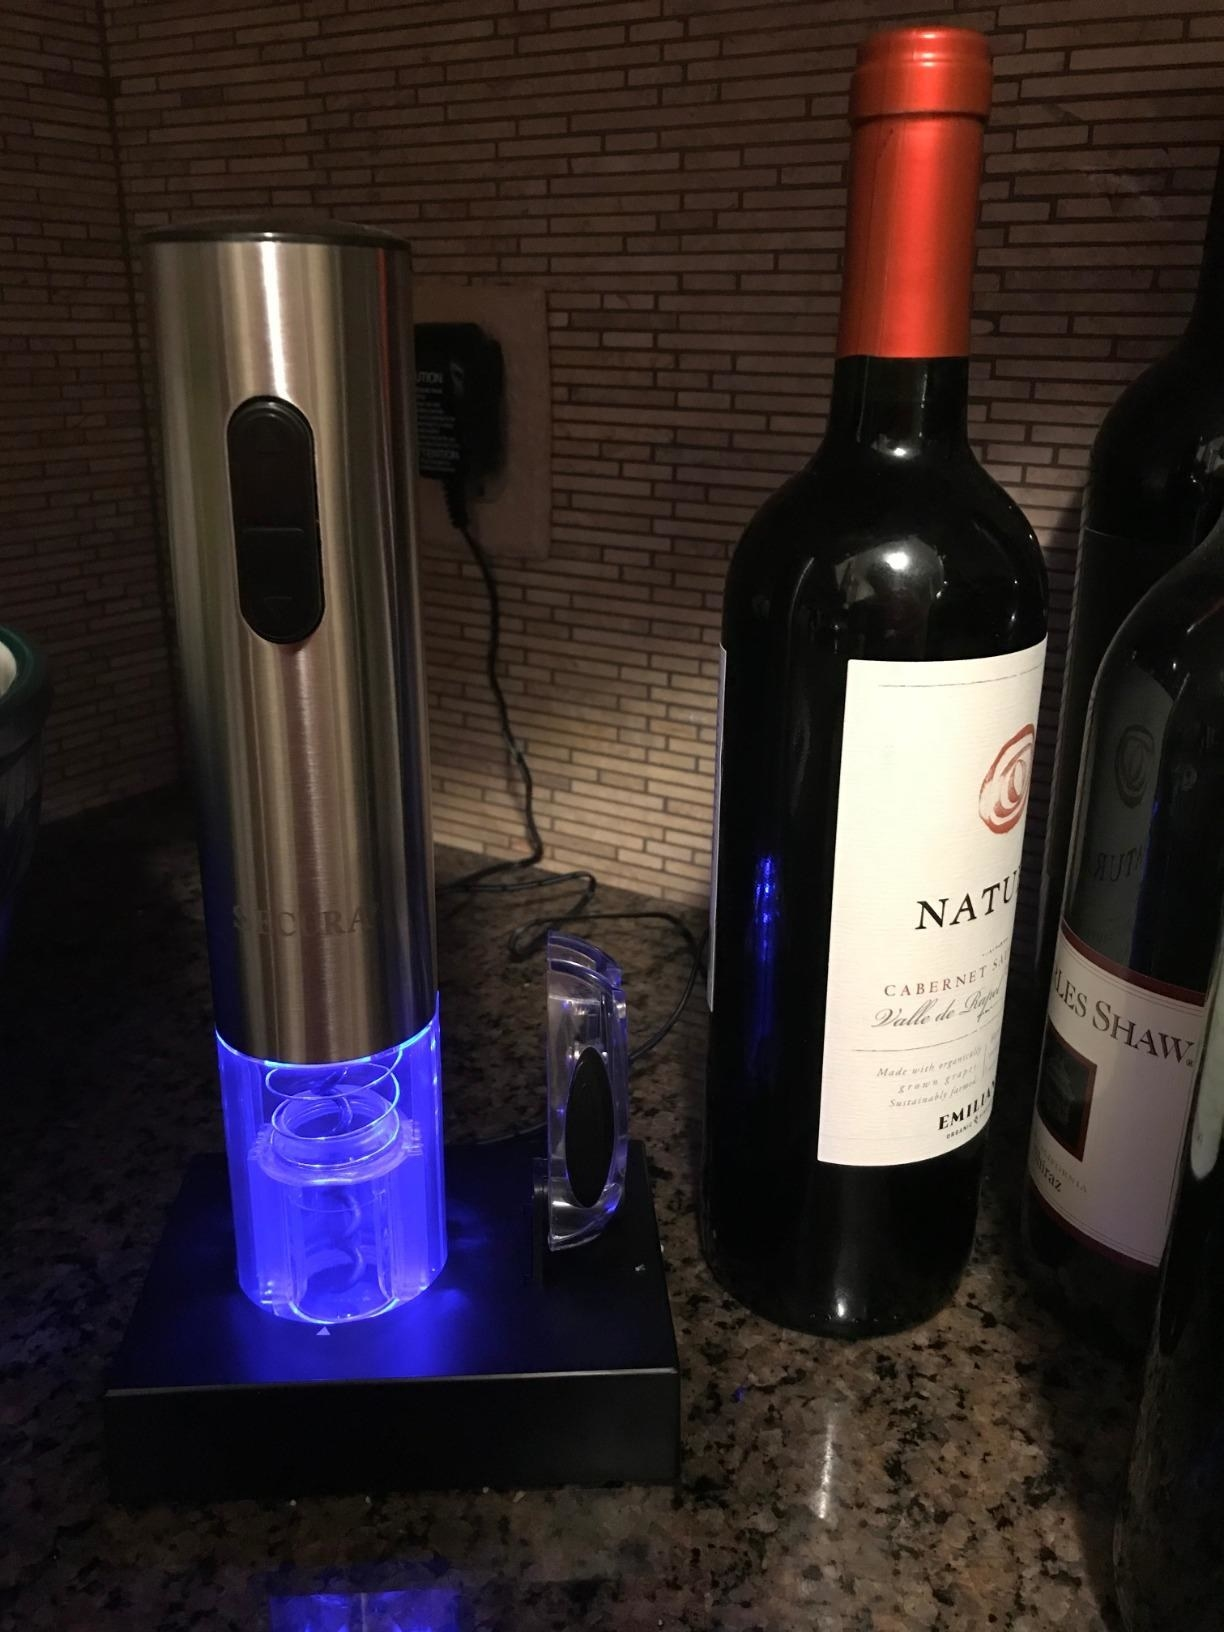 A reviewer's wine opener displayed upright next to a bottle of wine on a kitchen counter